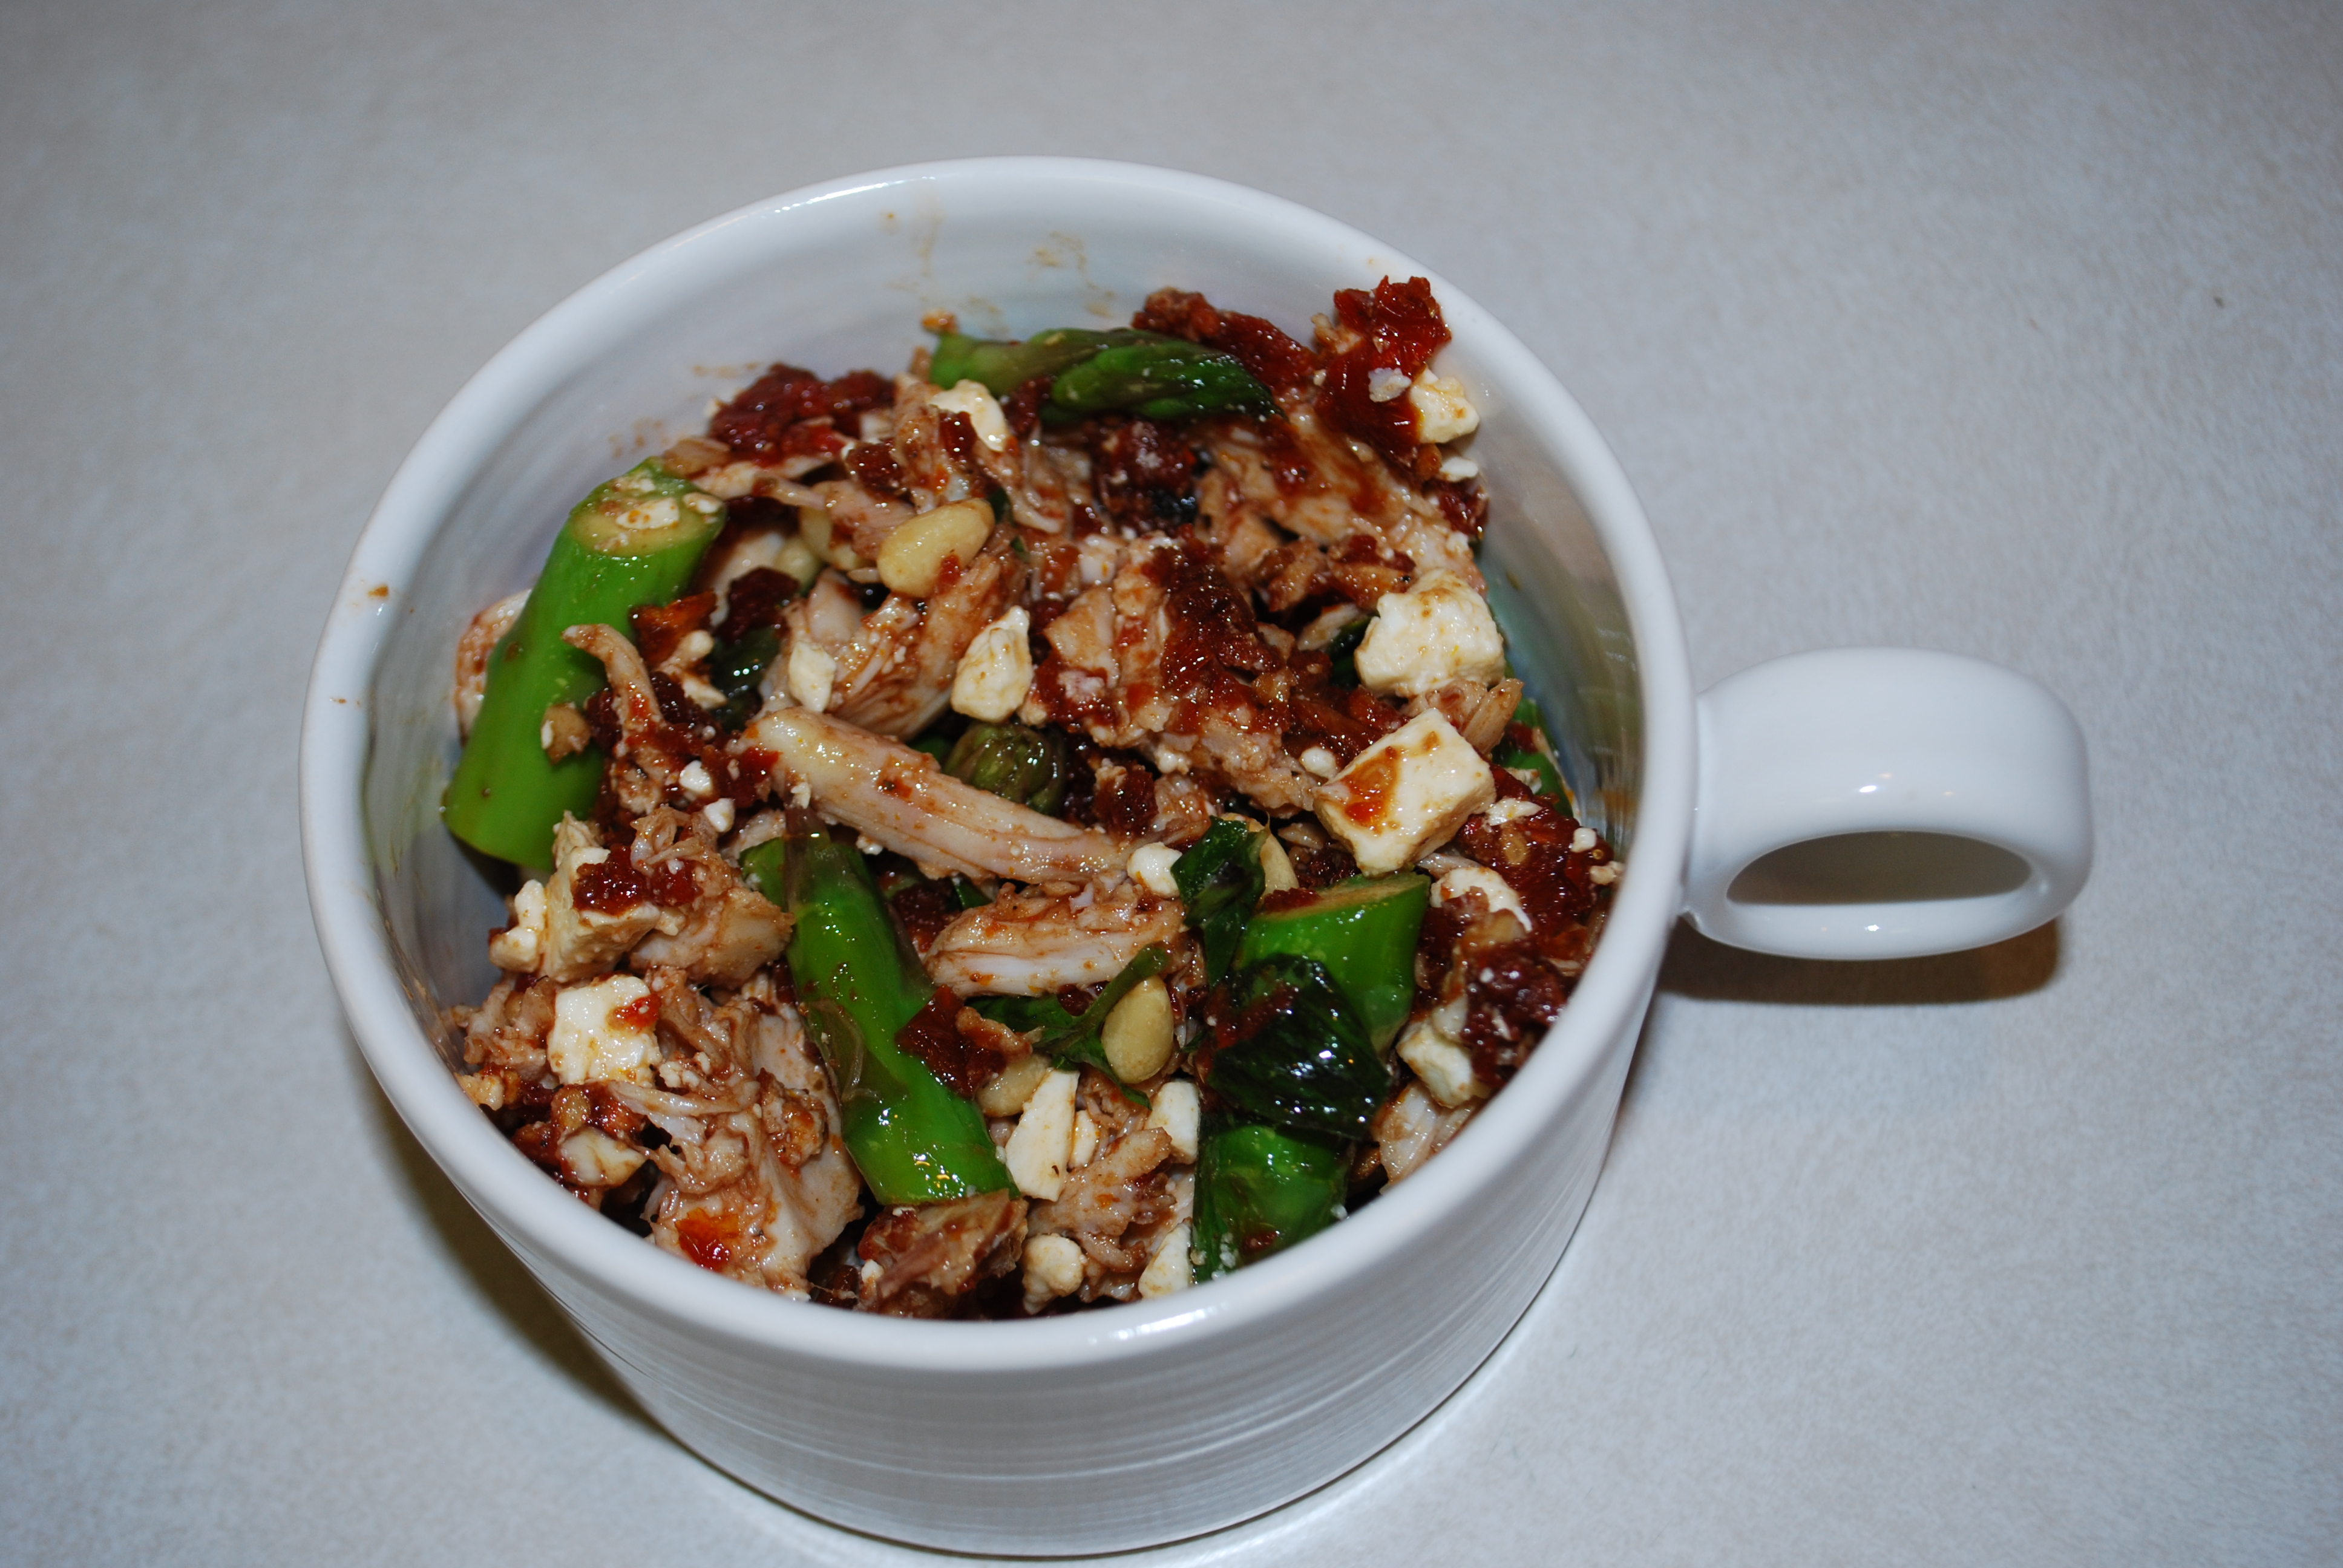 ... Recipe: Chicken Salad with Asparagus and Sun-Dried Tomato Dressing